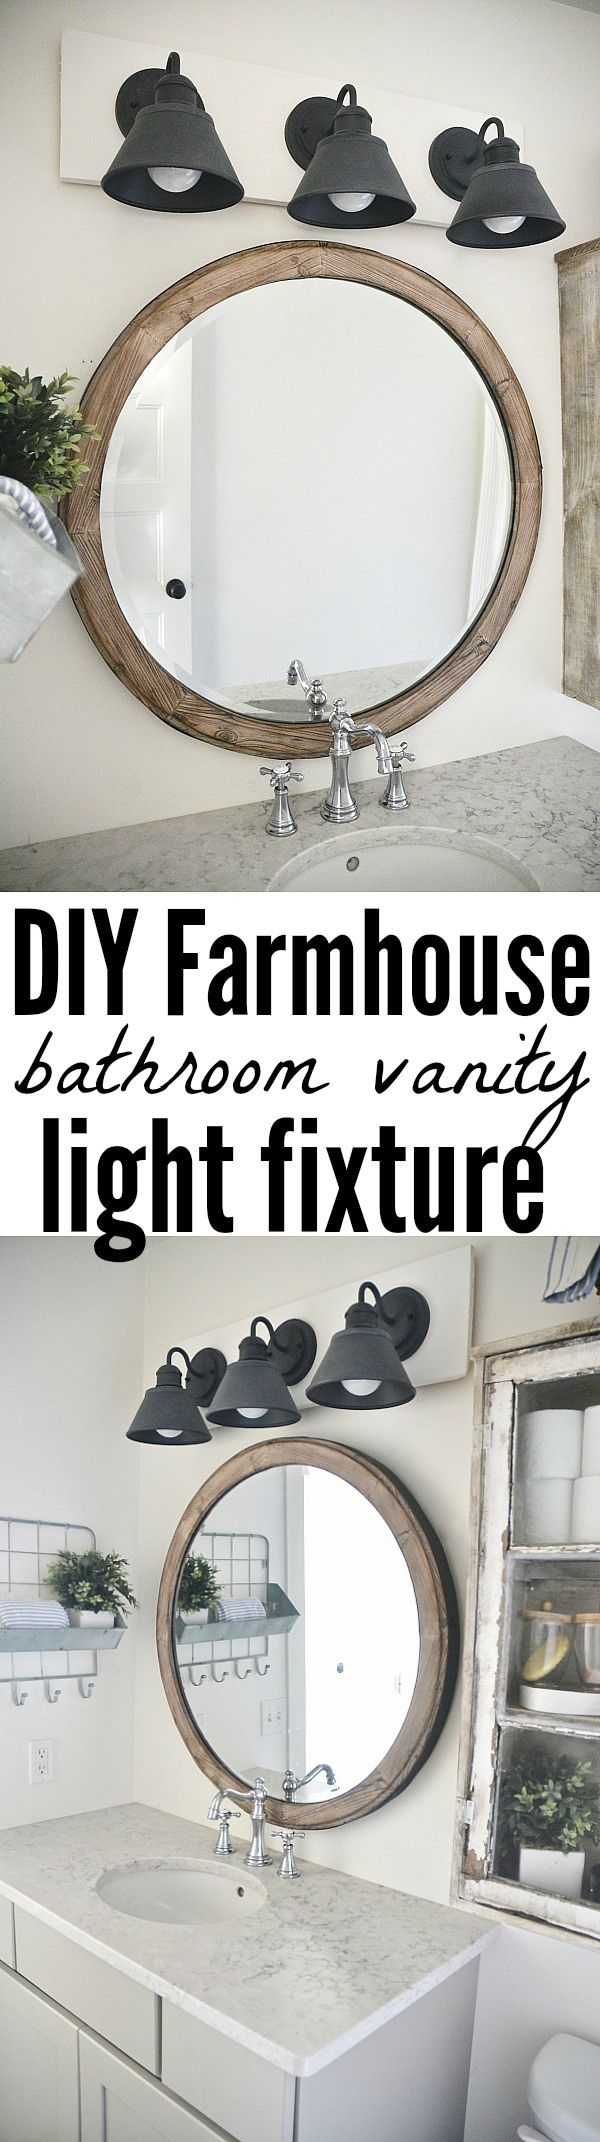 Industrial bathroom fixtures - Diy Farmhouse Bathroom Vanity Light Fixture